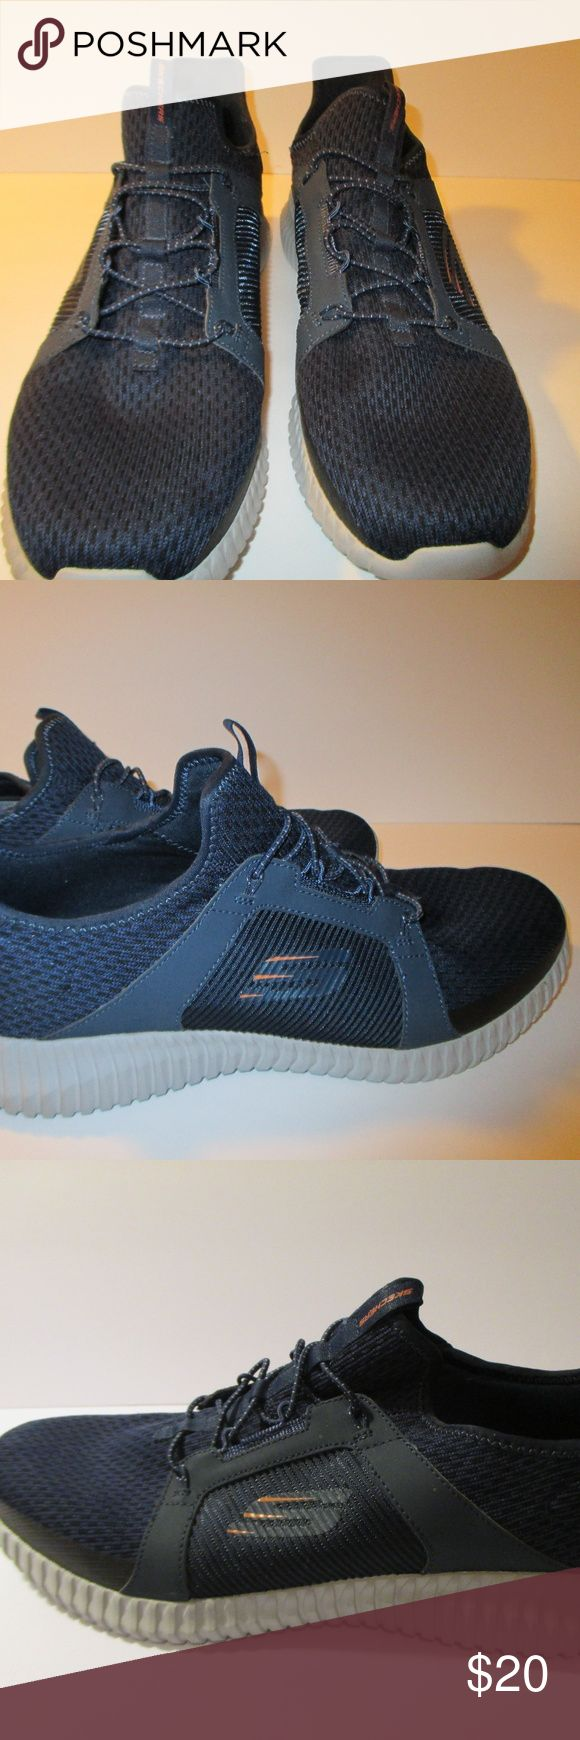 """Skechers Air-Cooled Memory Foam Men Shoes Skechers Air-Cooled Memory Foam Athletic shoes Mens size 11.5 Mesh and synthetic fabric- comfort midsole Navy  Bungee shoe lace  1 1/2"""" heel  Excellent preowned condition worn twice Skechers Shoes Sneakers"""